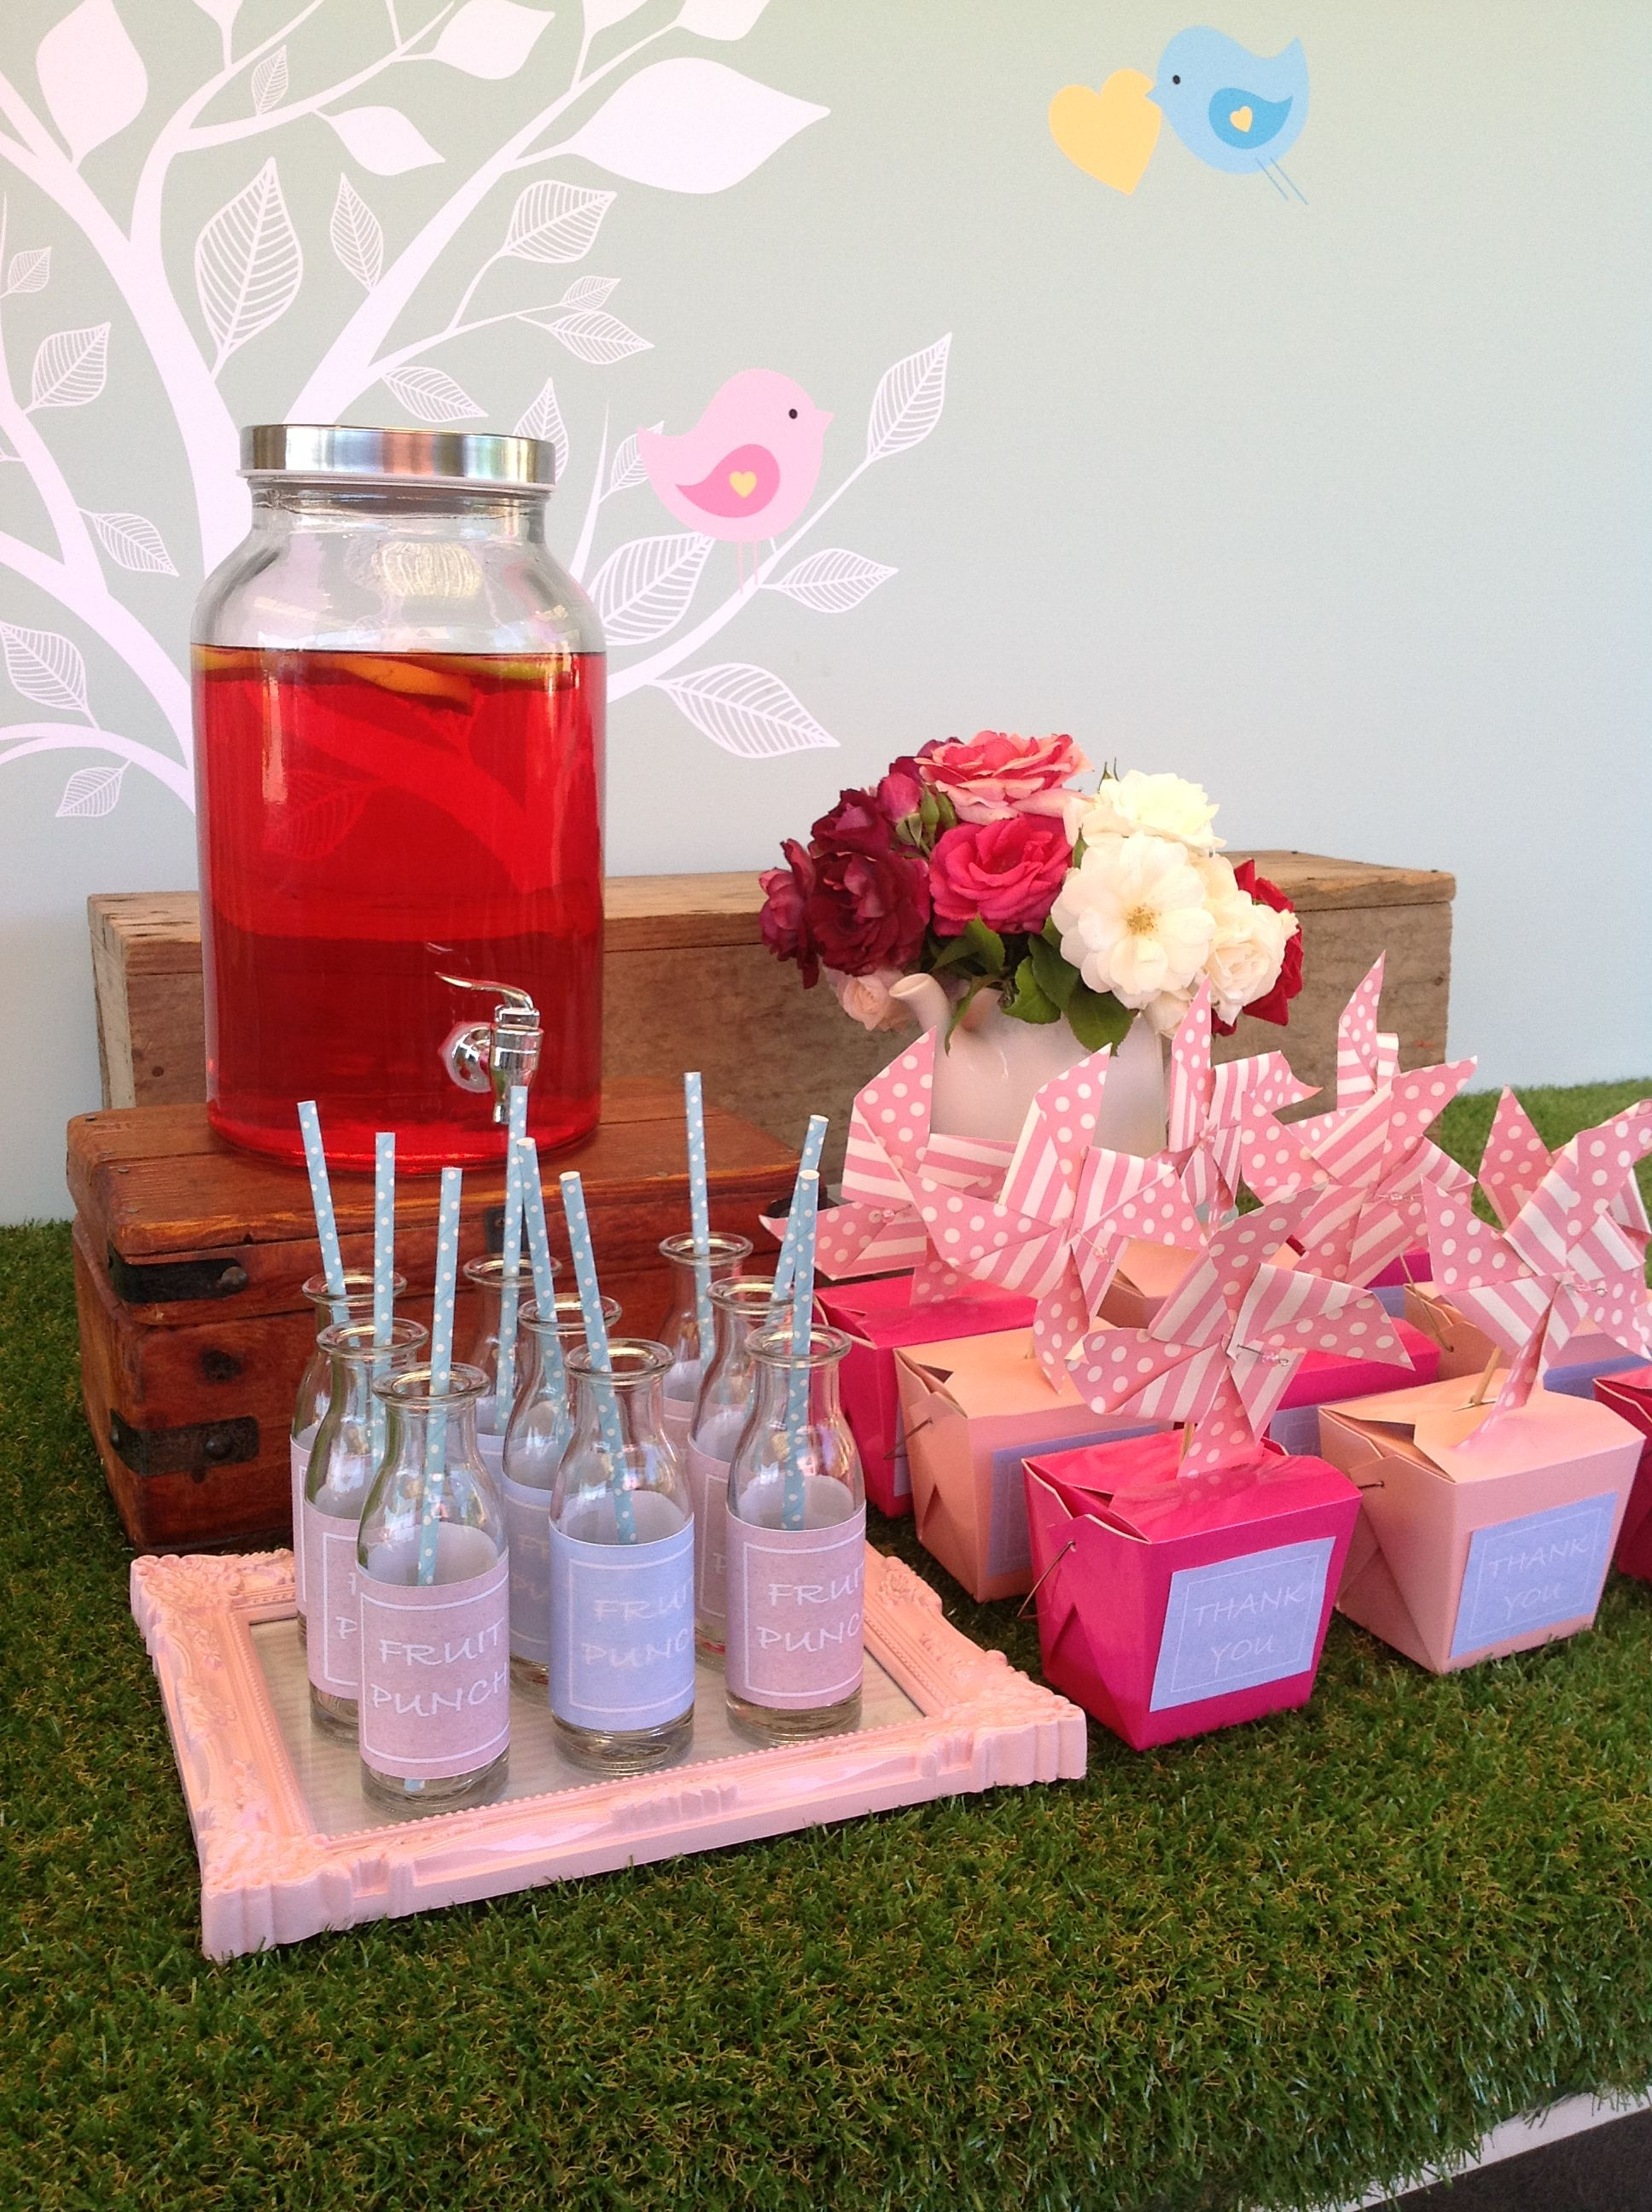 A Very Chic Garden Party styled by Oh Feri - Party and Event Styling  Bridal Shower  www.facebook.com/ohferieventstylist